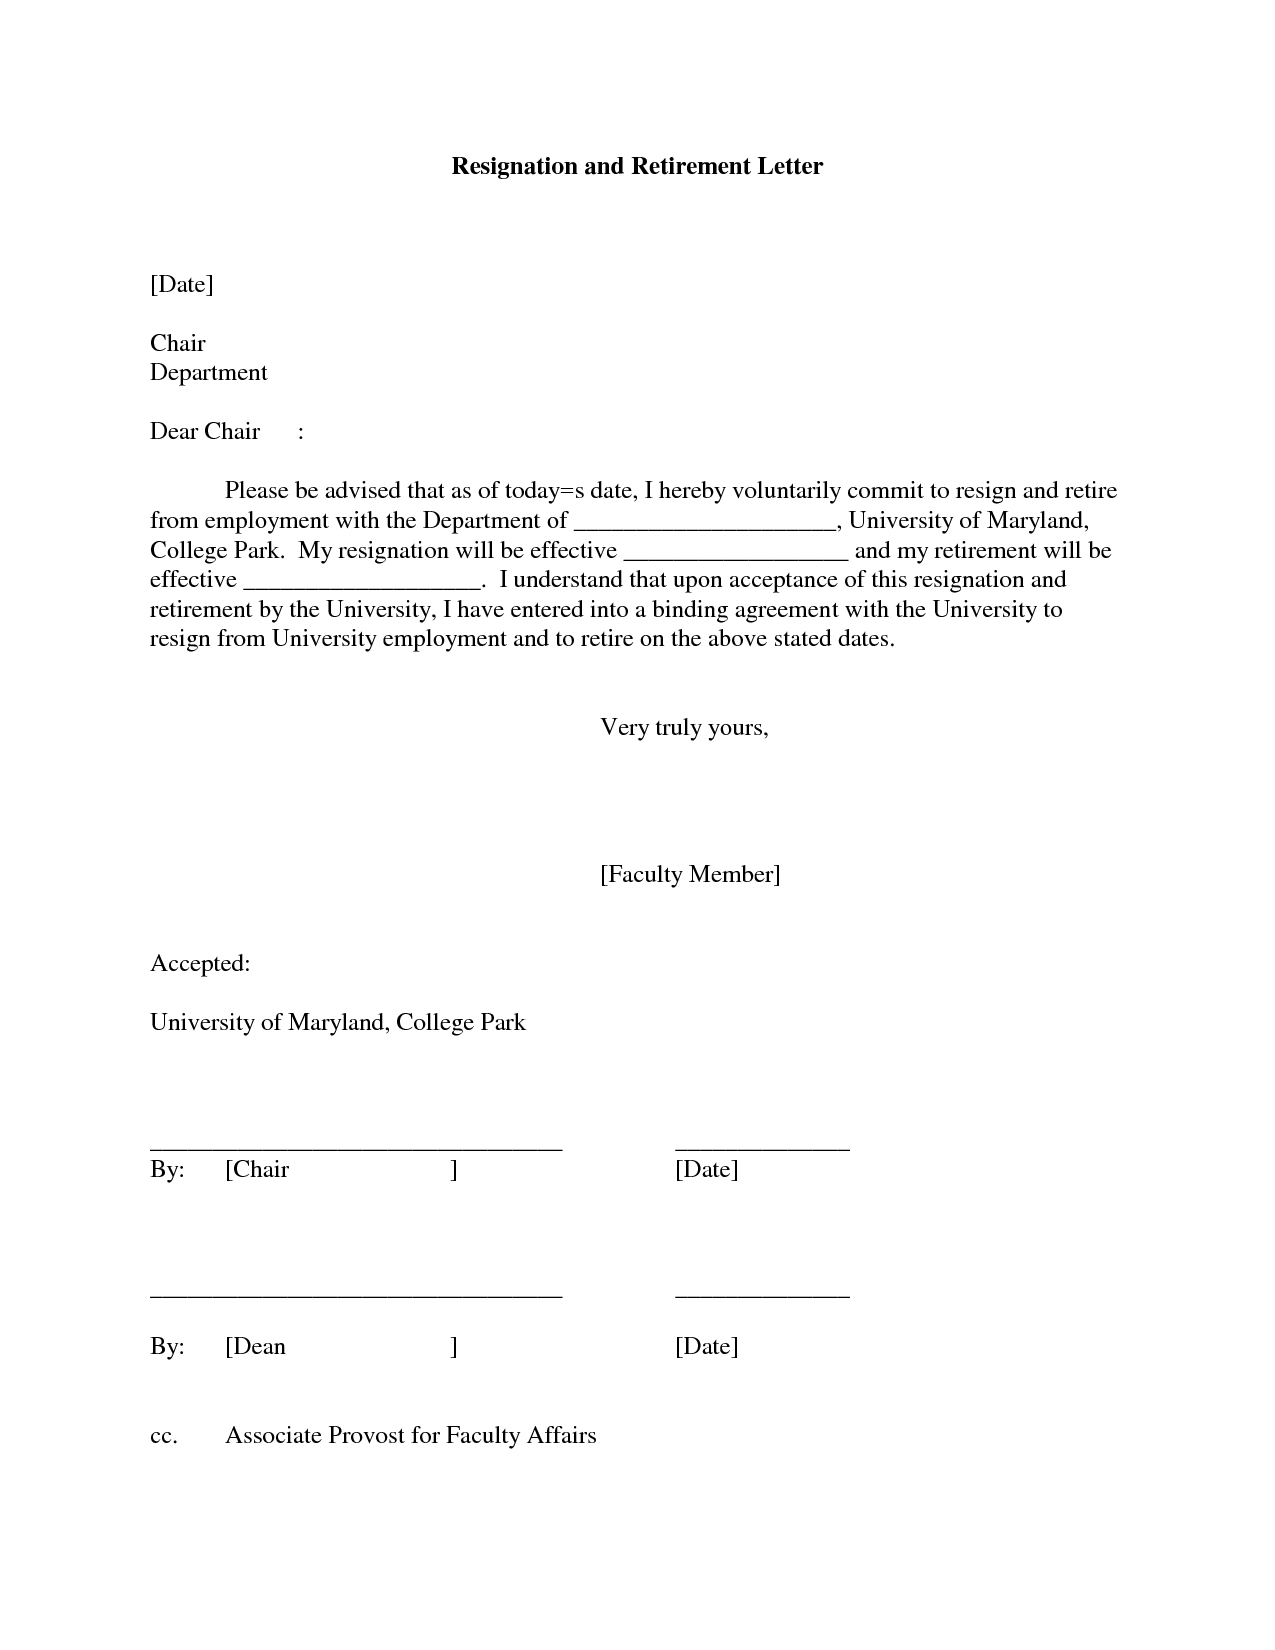 retirement letter of resignation template Collection-Resignation Letter Format Shocking Examples Retirement Letter Resignation Accepted Vacation Formal Teacher Ideas Stunning Writing Awesome retirement 19-l